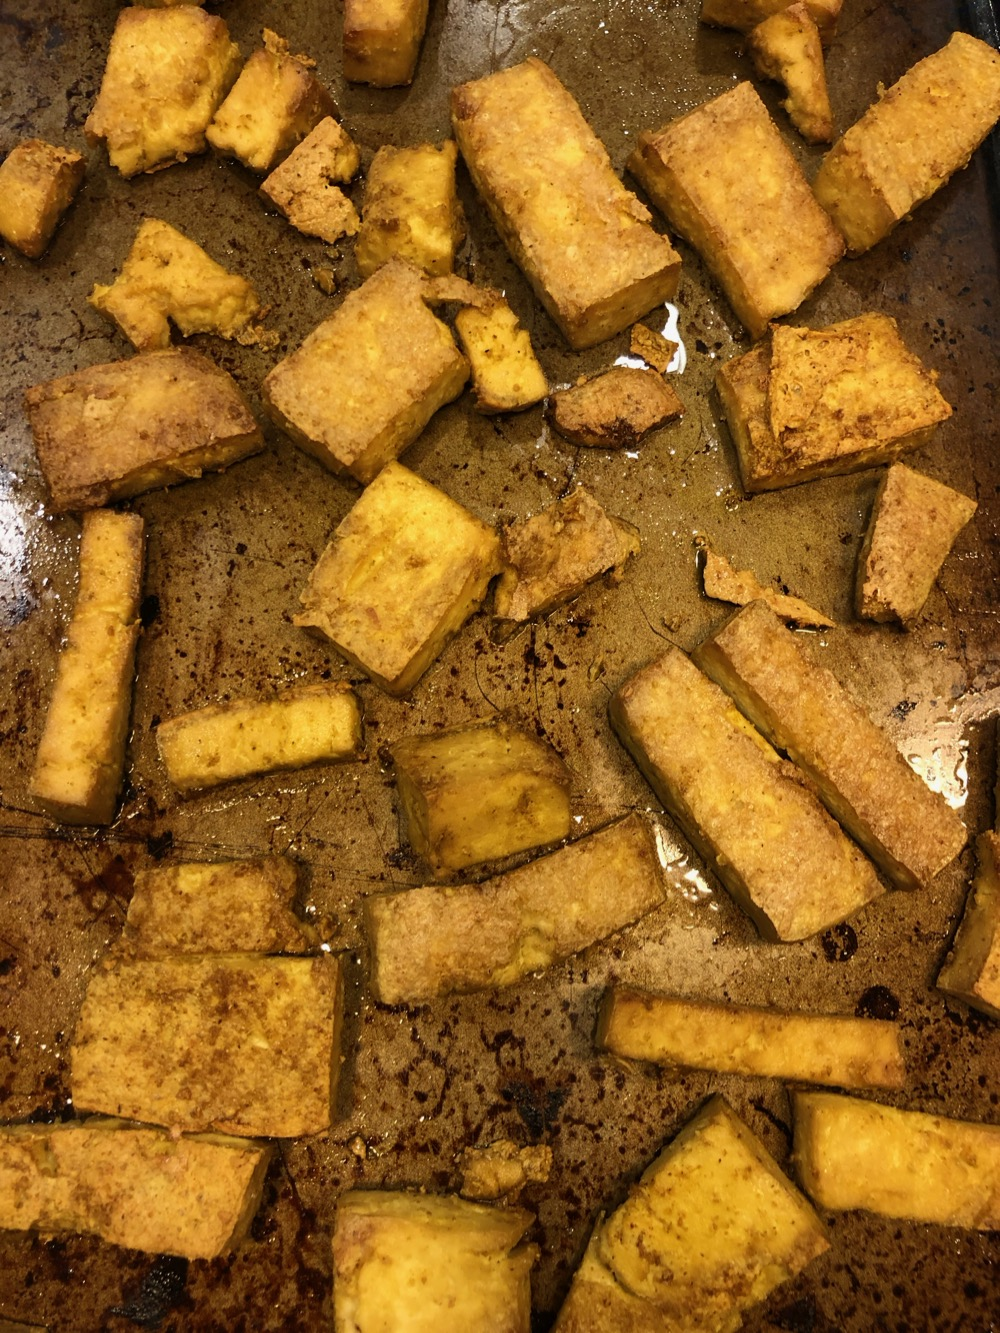 Palak tofu is baked